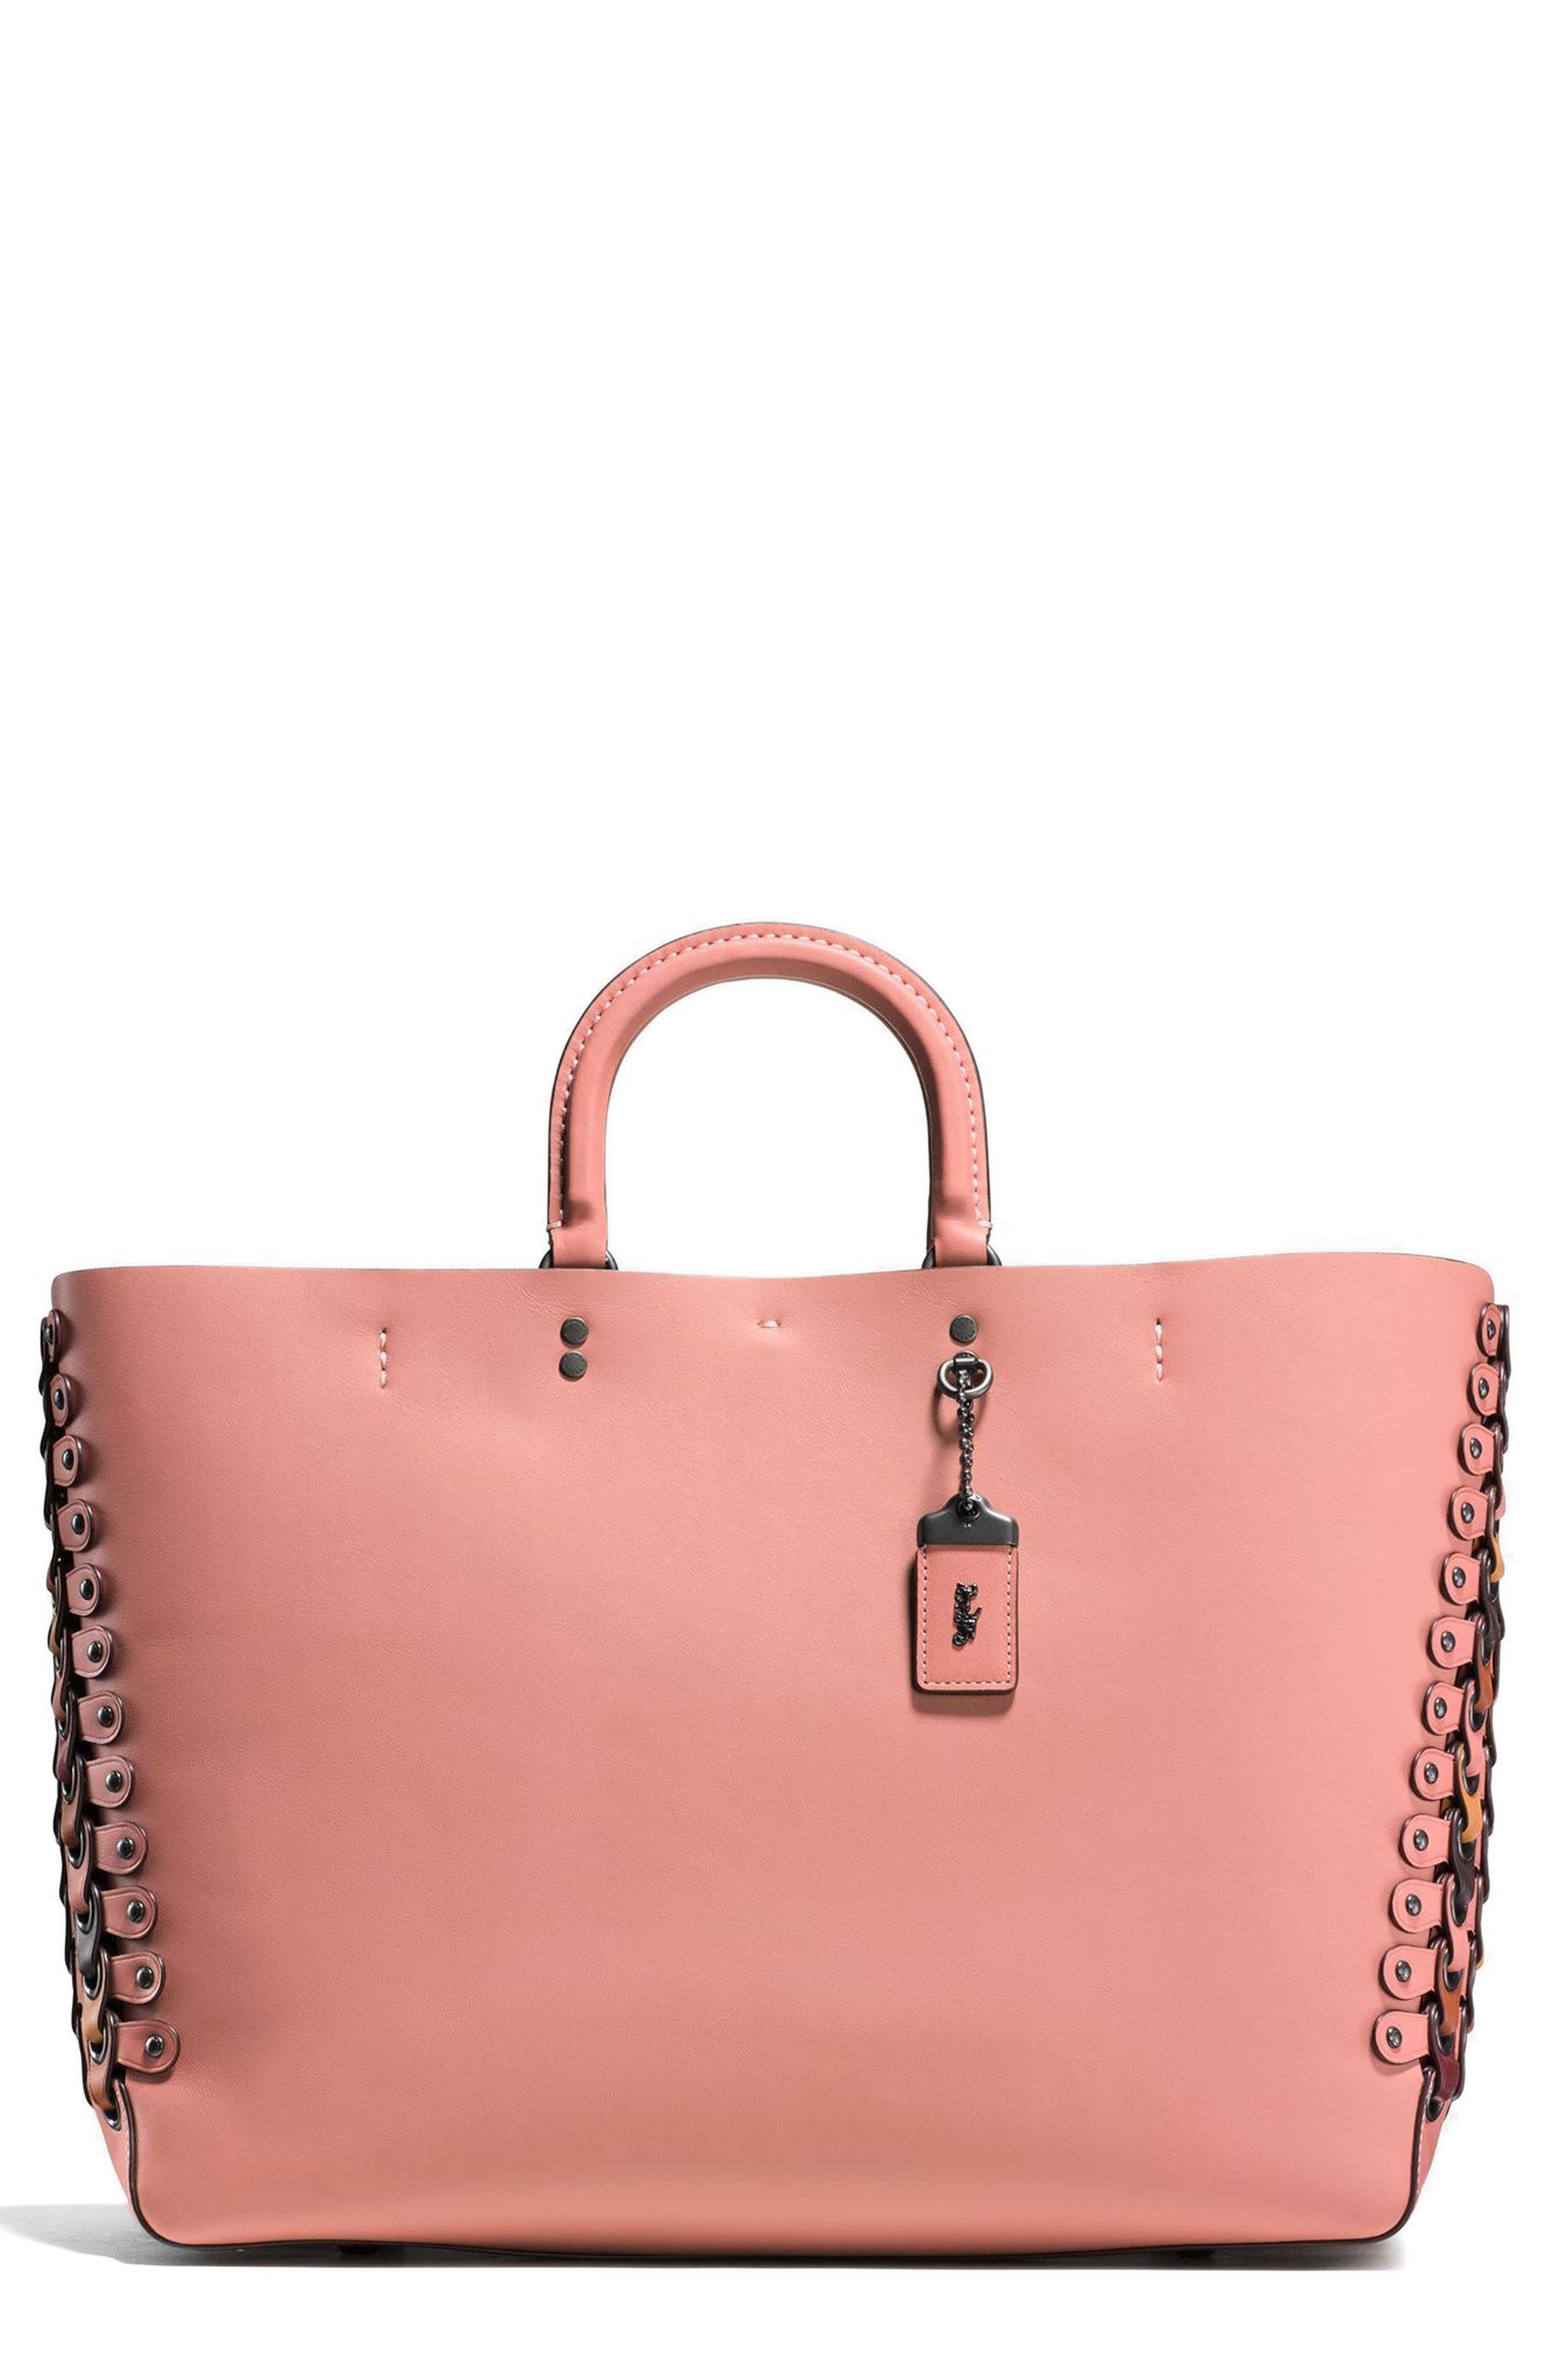 COACH 1941 Rogue Linked Leather Tote